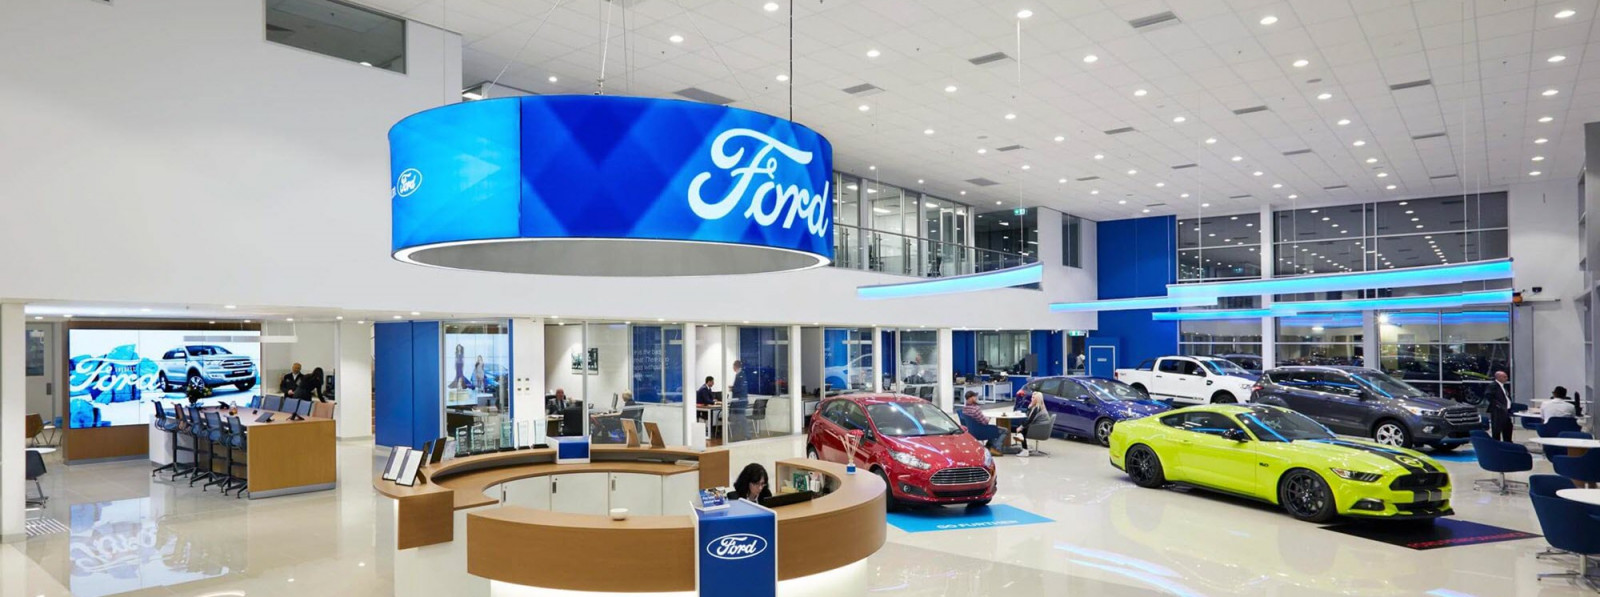 Using digital technology to take the Ford Trustmark Facility experience beyond expected